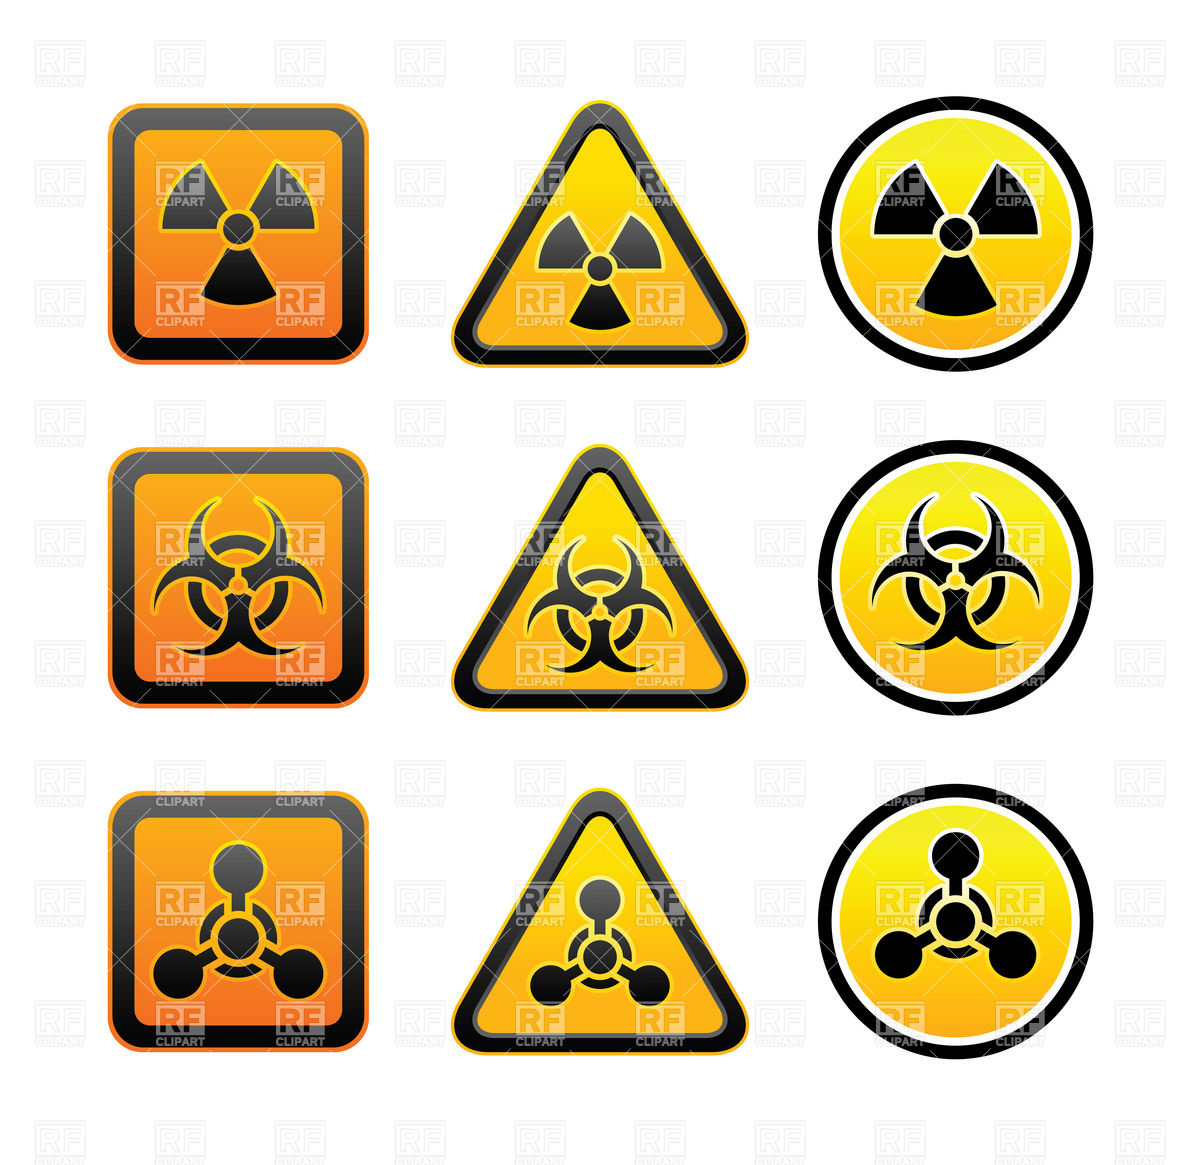 Clipart signs and symbols clip royalty free download Clipart Catalog Signs Symbols Maps Warning Symbols Radiation ... clip royalty free download